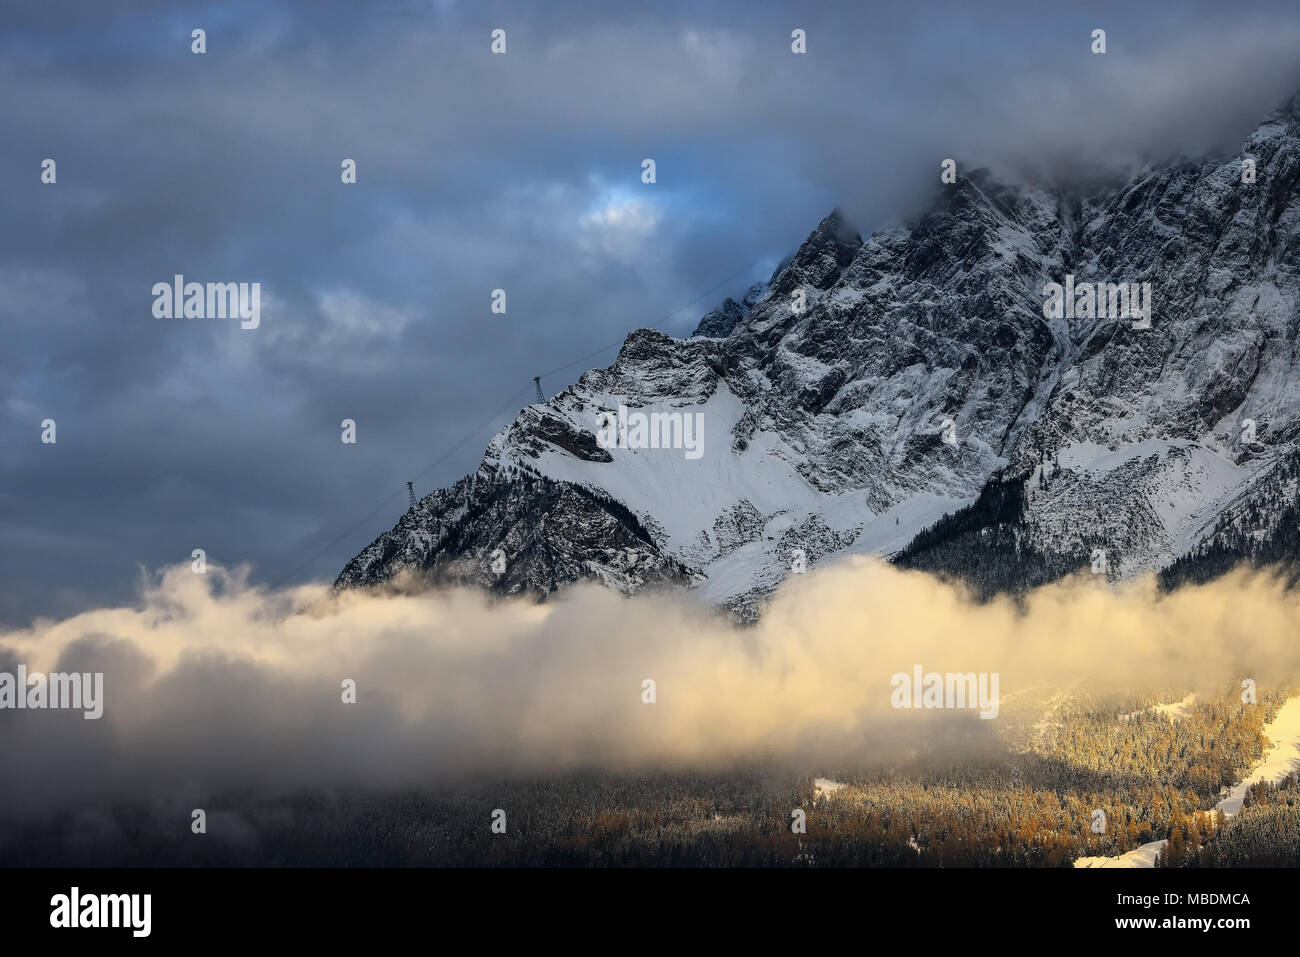 Amazing scene of Zugspitze mountain. Trees covered by snow. Heavy clouds over mountains. Ammergau Alps. Typical winter scene at mountain. Bavarian pea - Stock Image